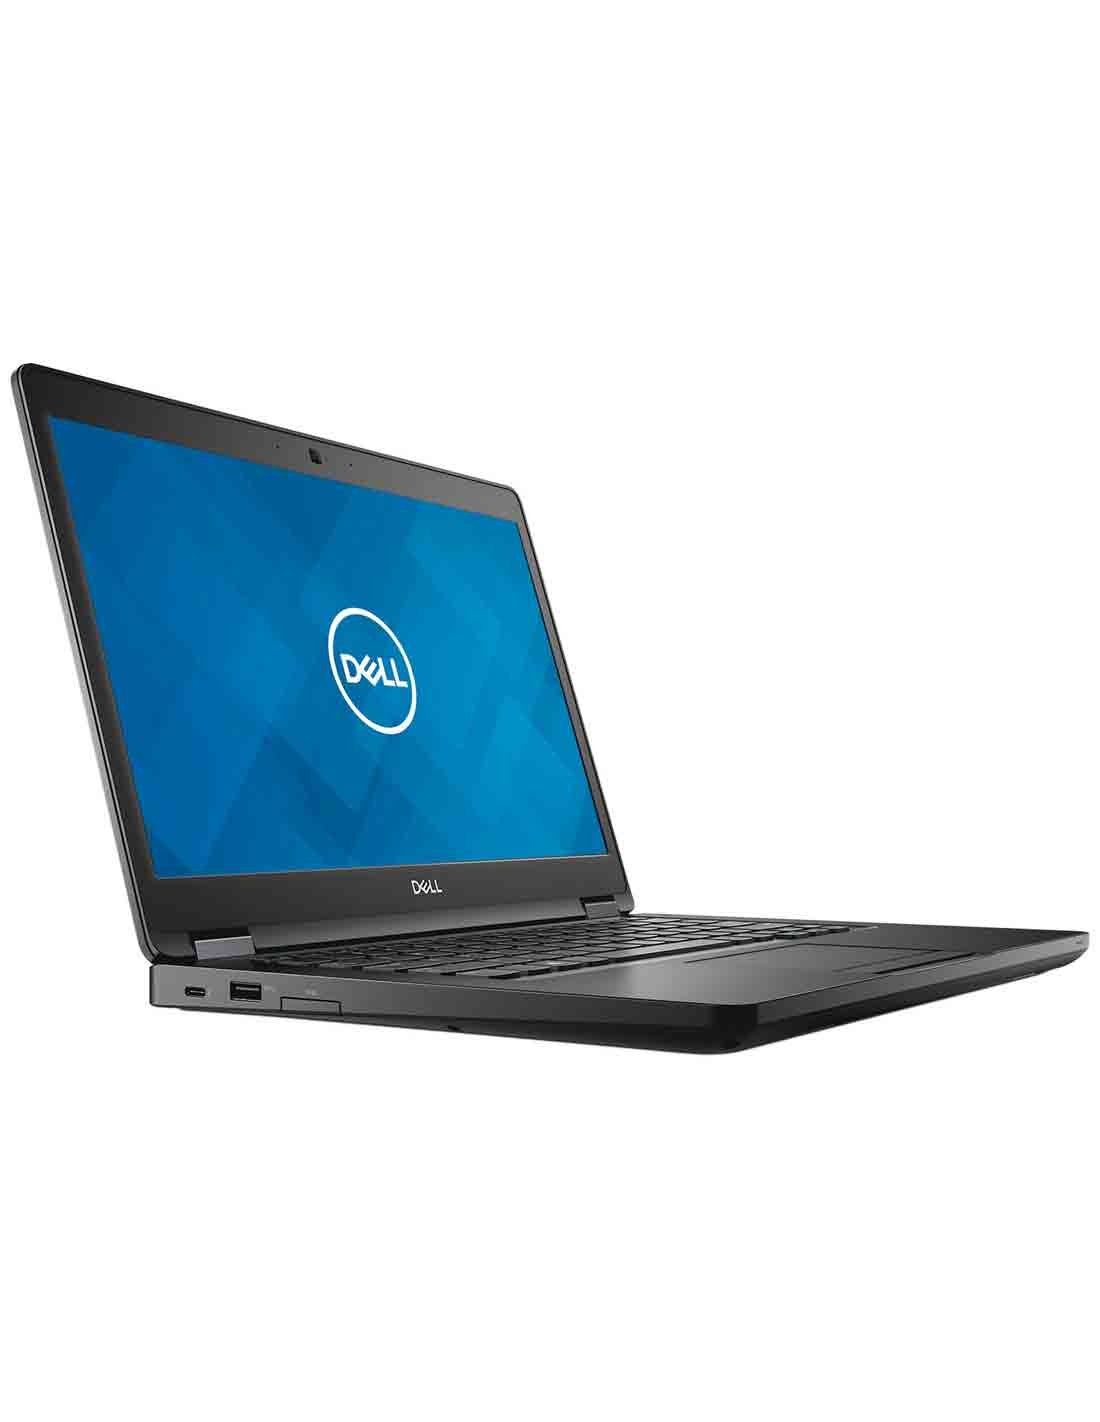 Dell Latitude 5490 Laptop images and photos in Dubai computer store